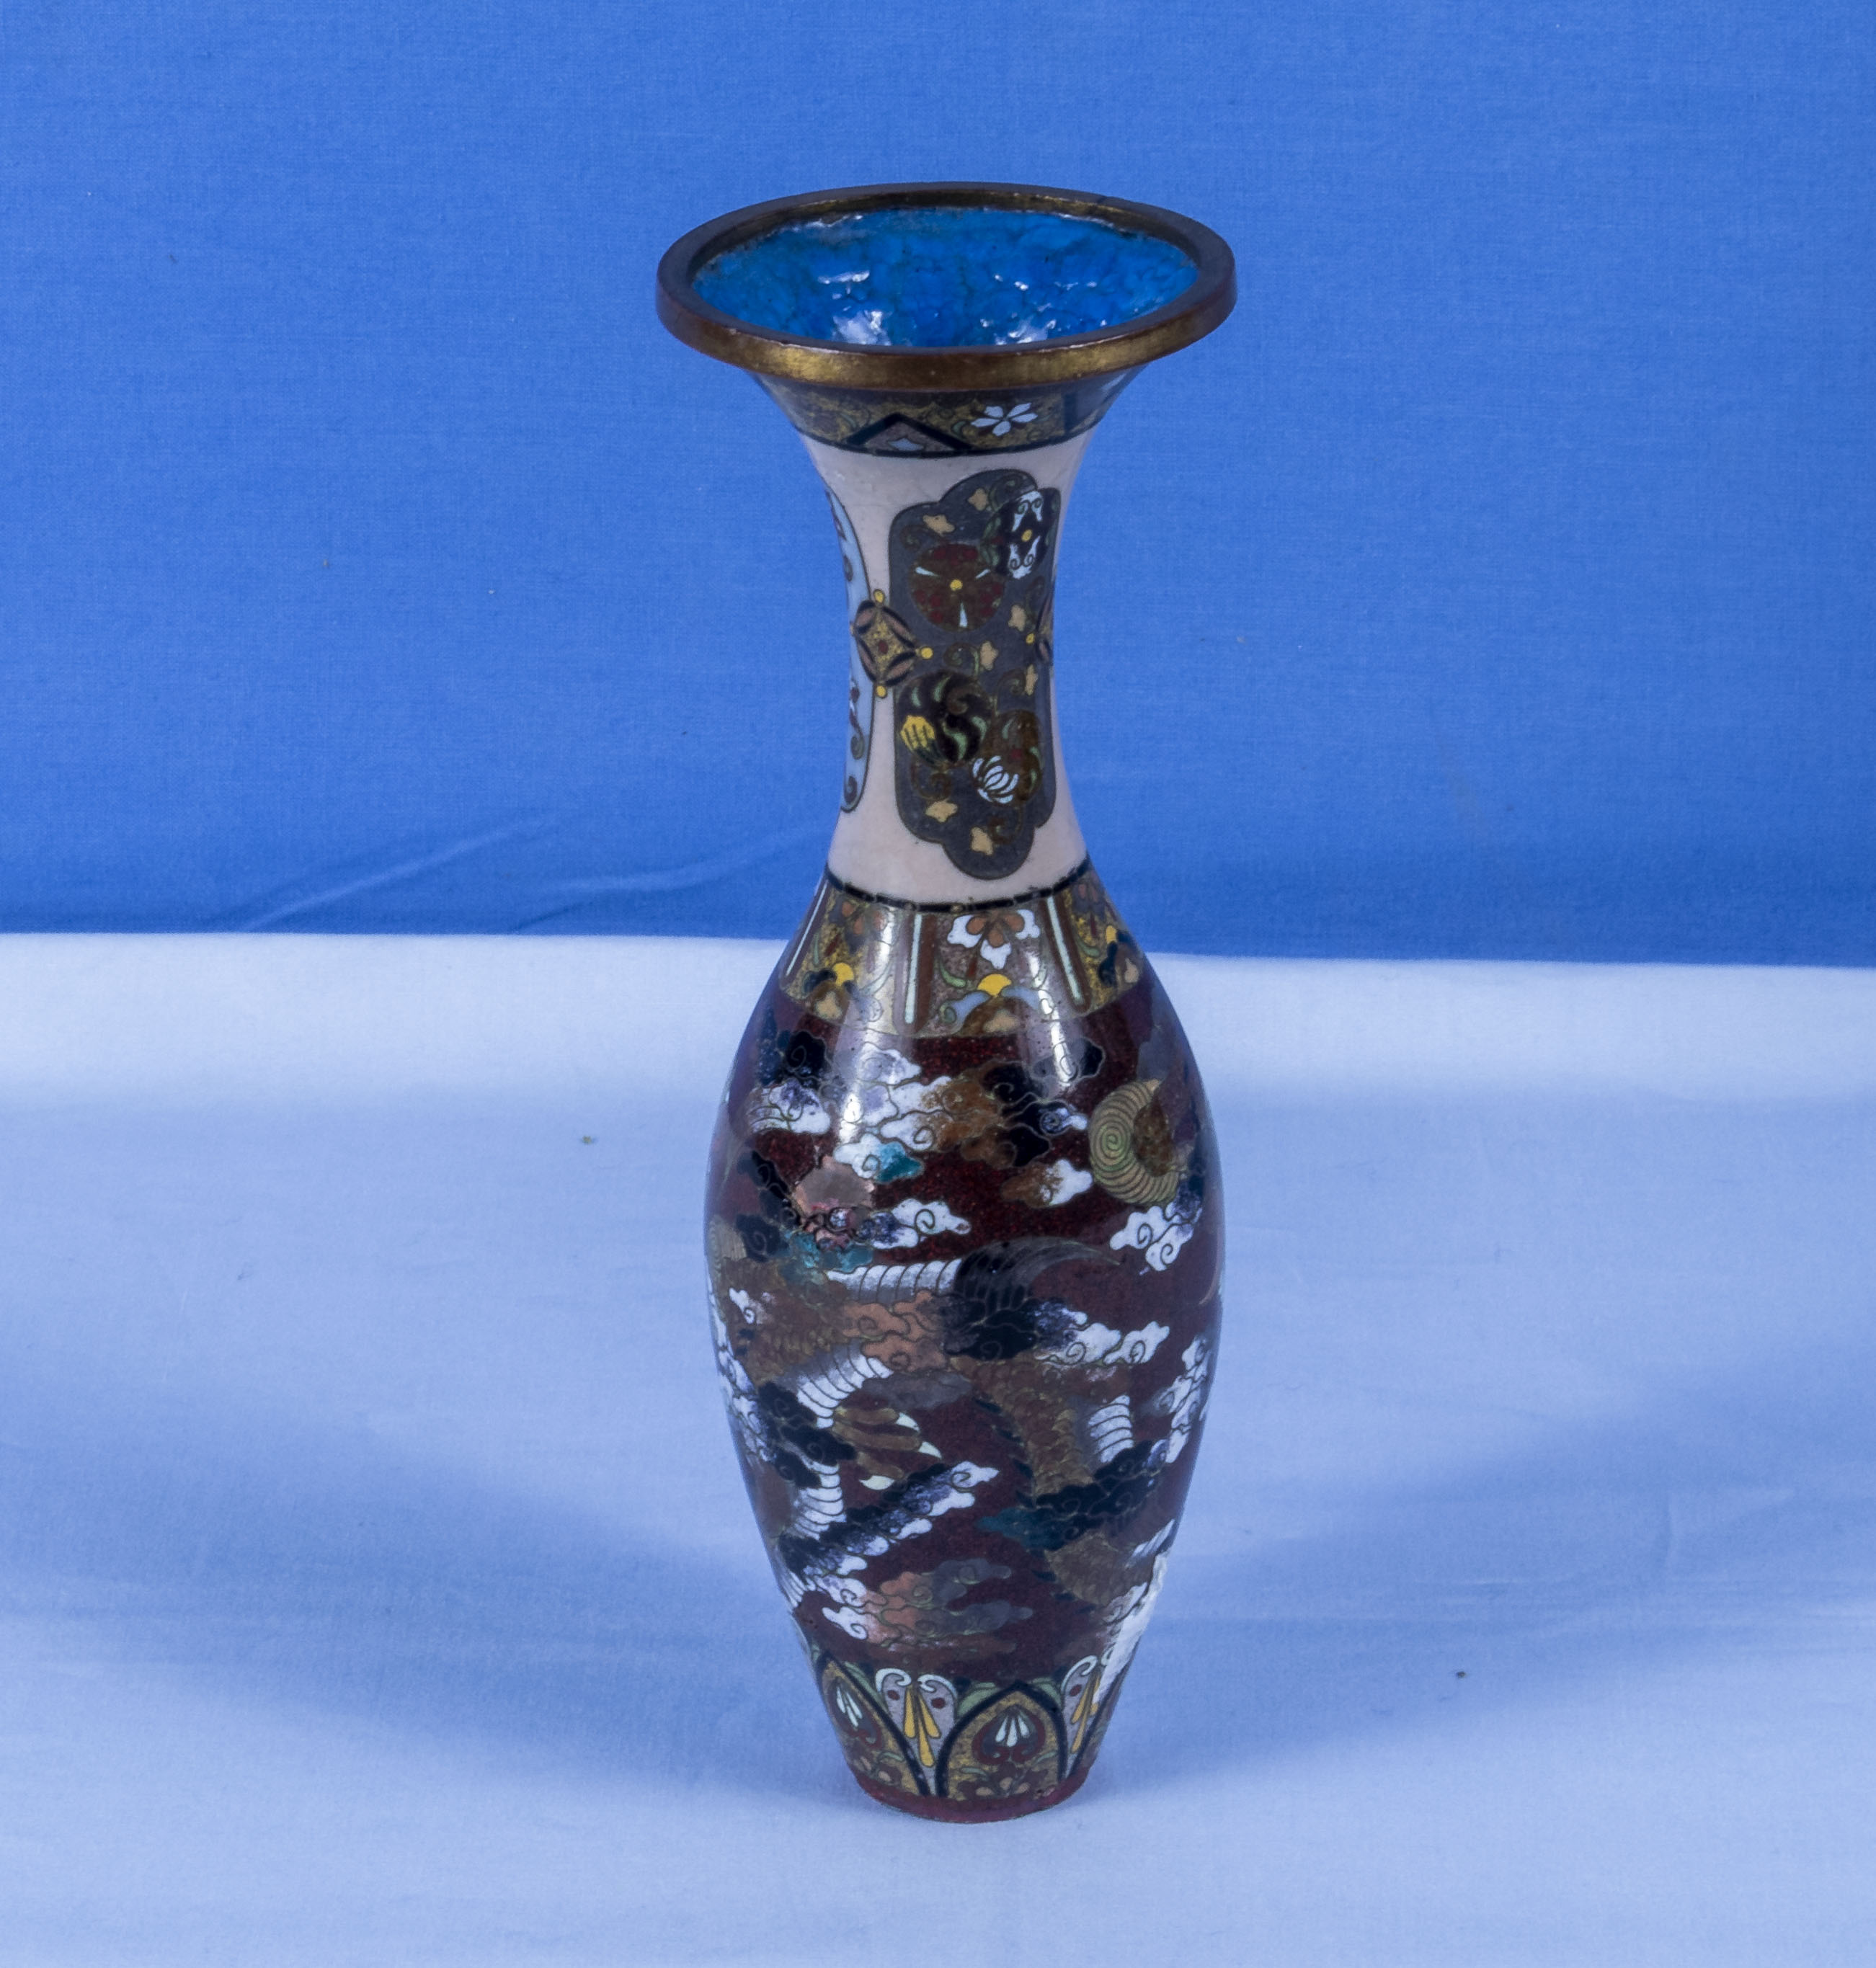 A fine quality Japanese miniature cloisonne vase decorated with dragons - Image 3 of 6